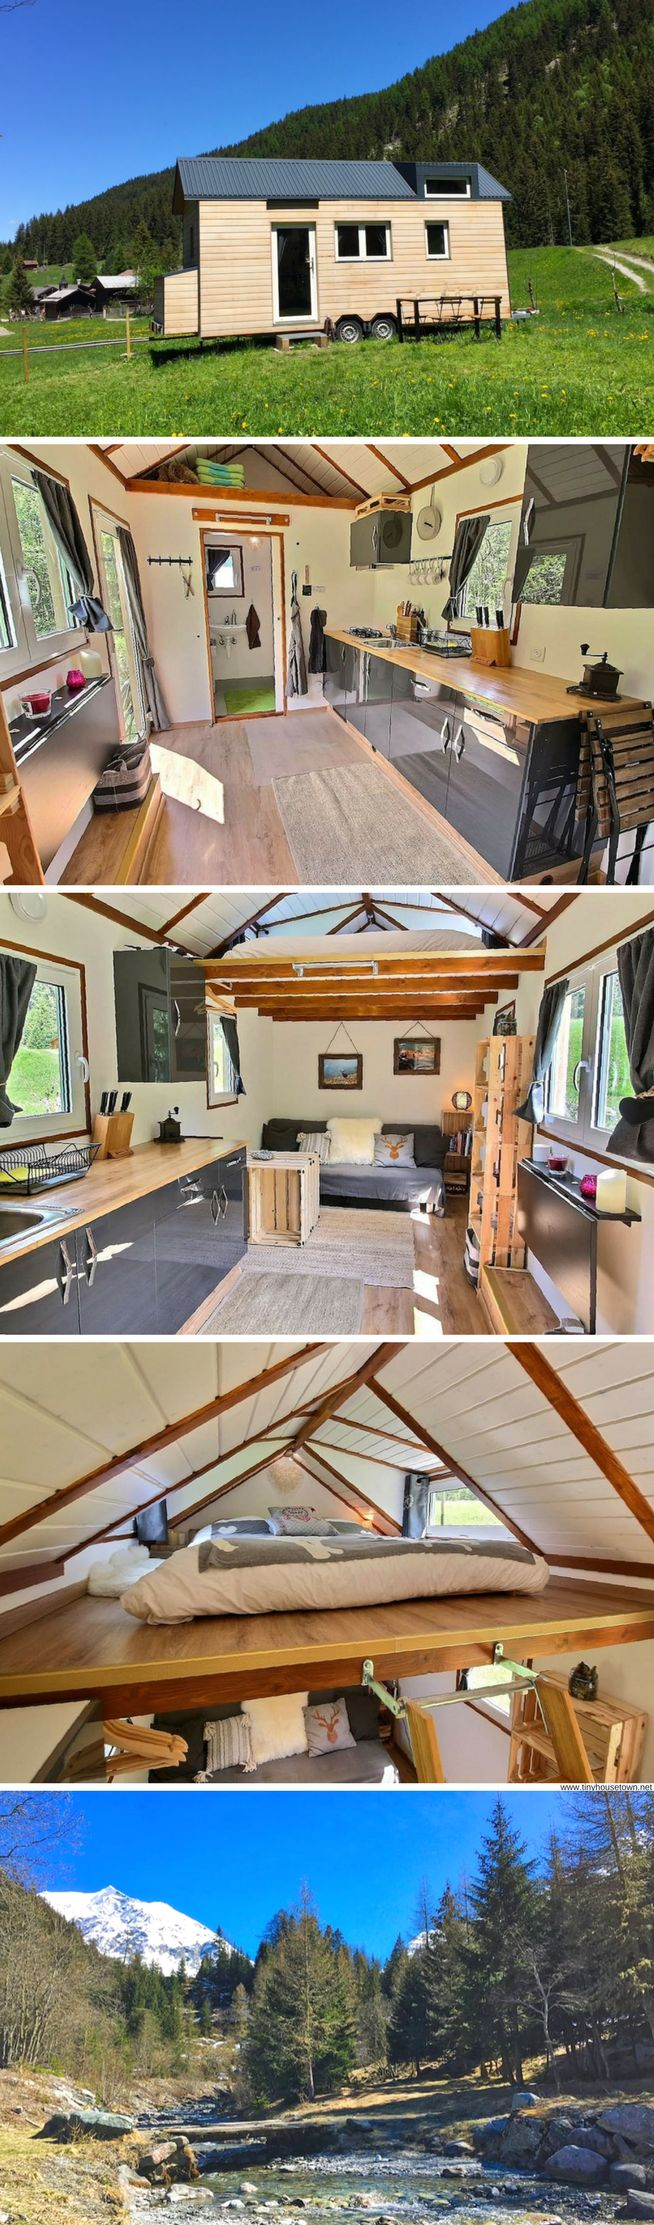 A beautiful tiny house on wheels available for rent in Prolong, Switzerland PINTEREST Arilethbridge